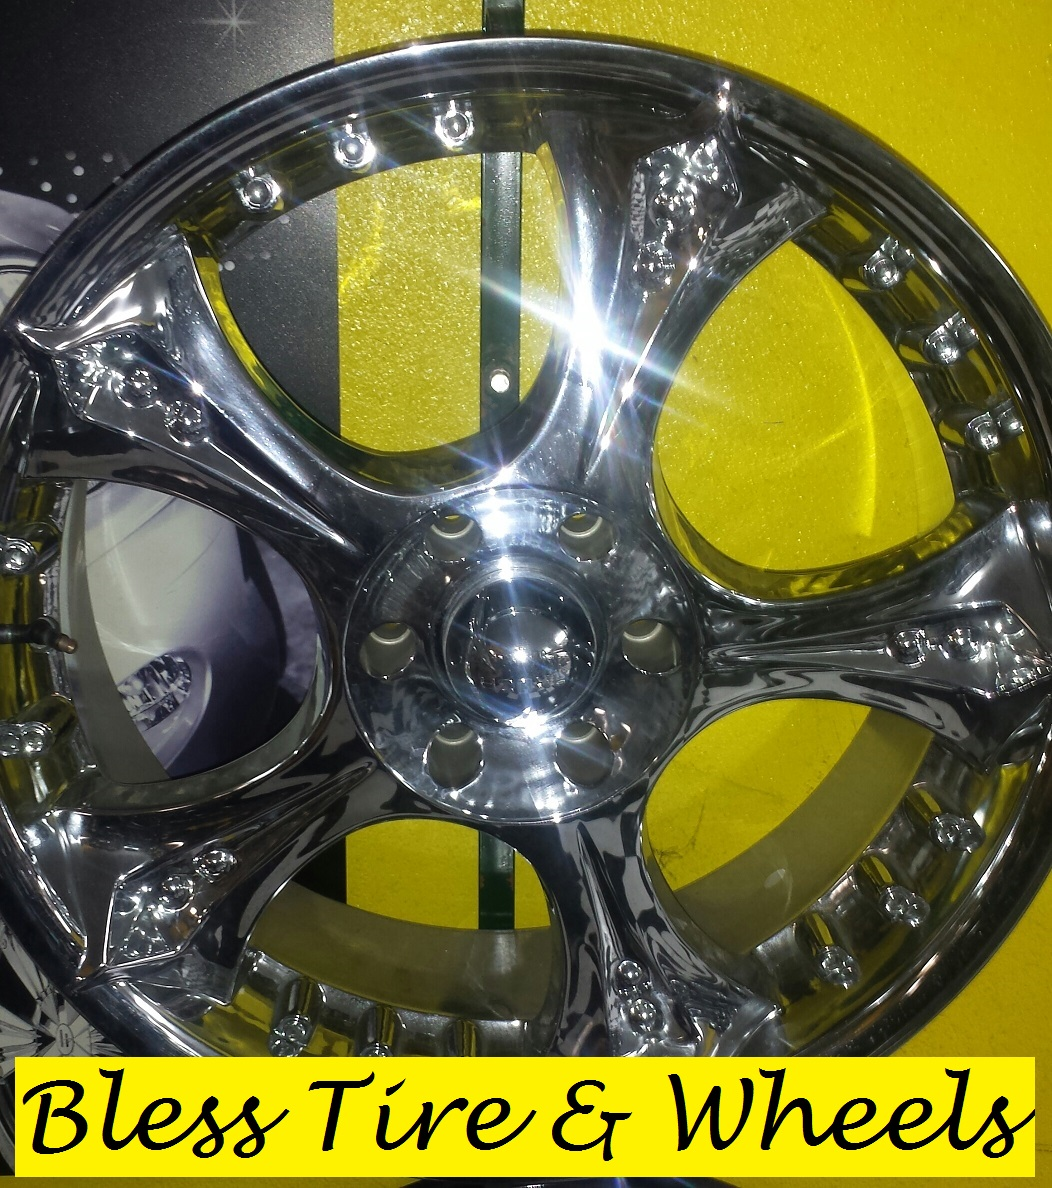 Special on wheels Brand name Akuza 619 22 22x95 Bolt pattern 6x139TWO LOCATIONS Business w